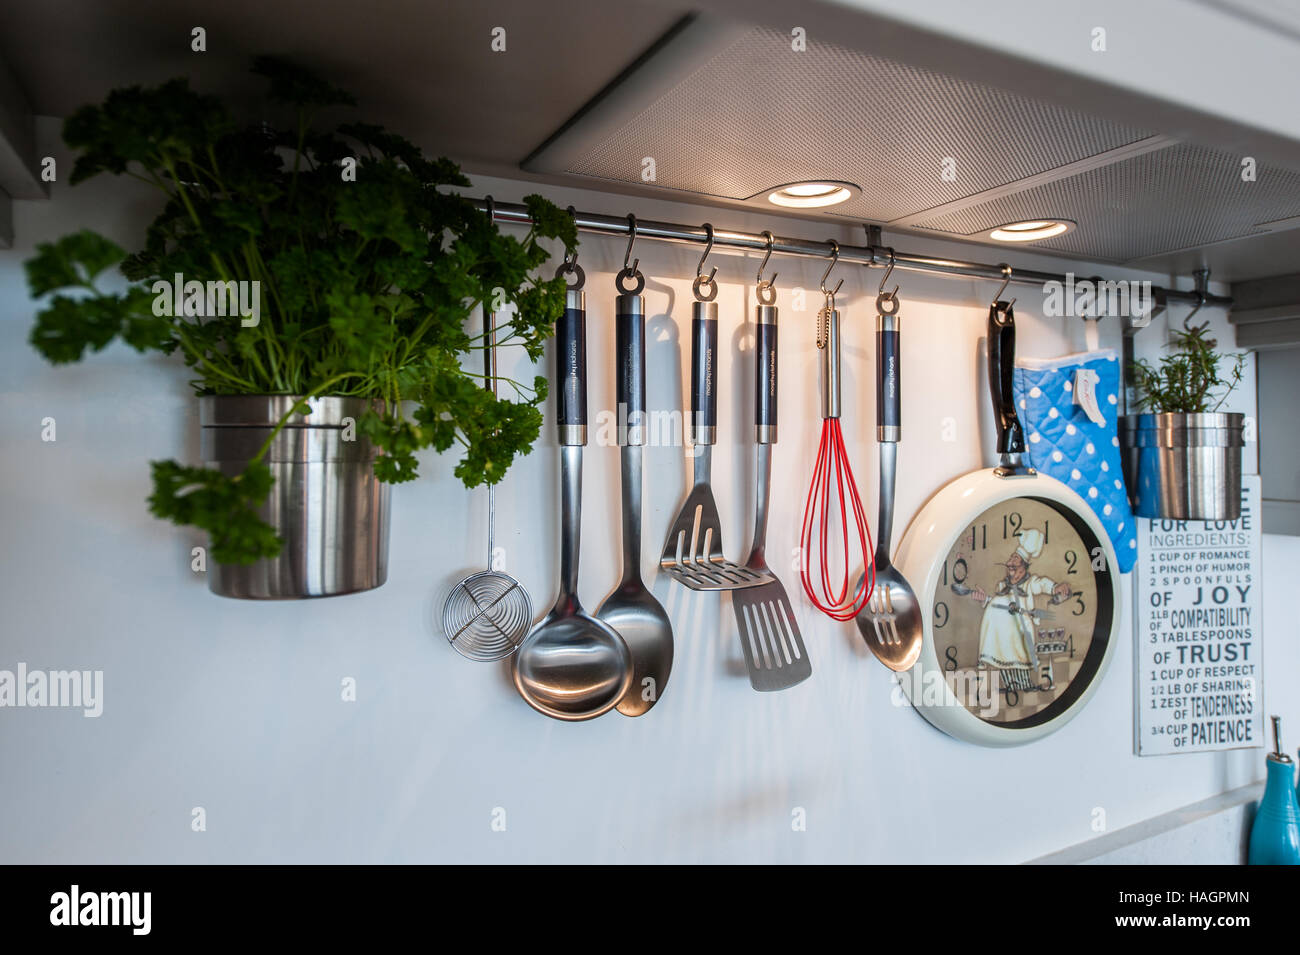 Various kitchen utensils hanging in a domestic kitchen. - Stock Image